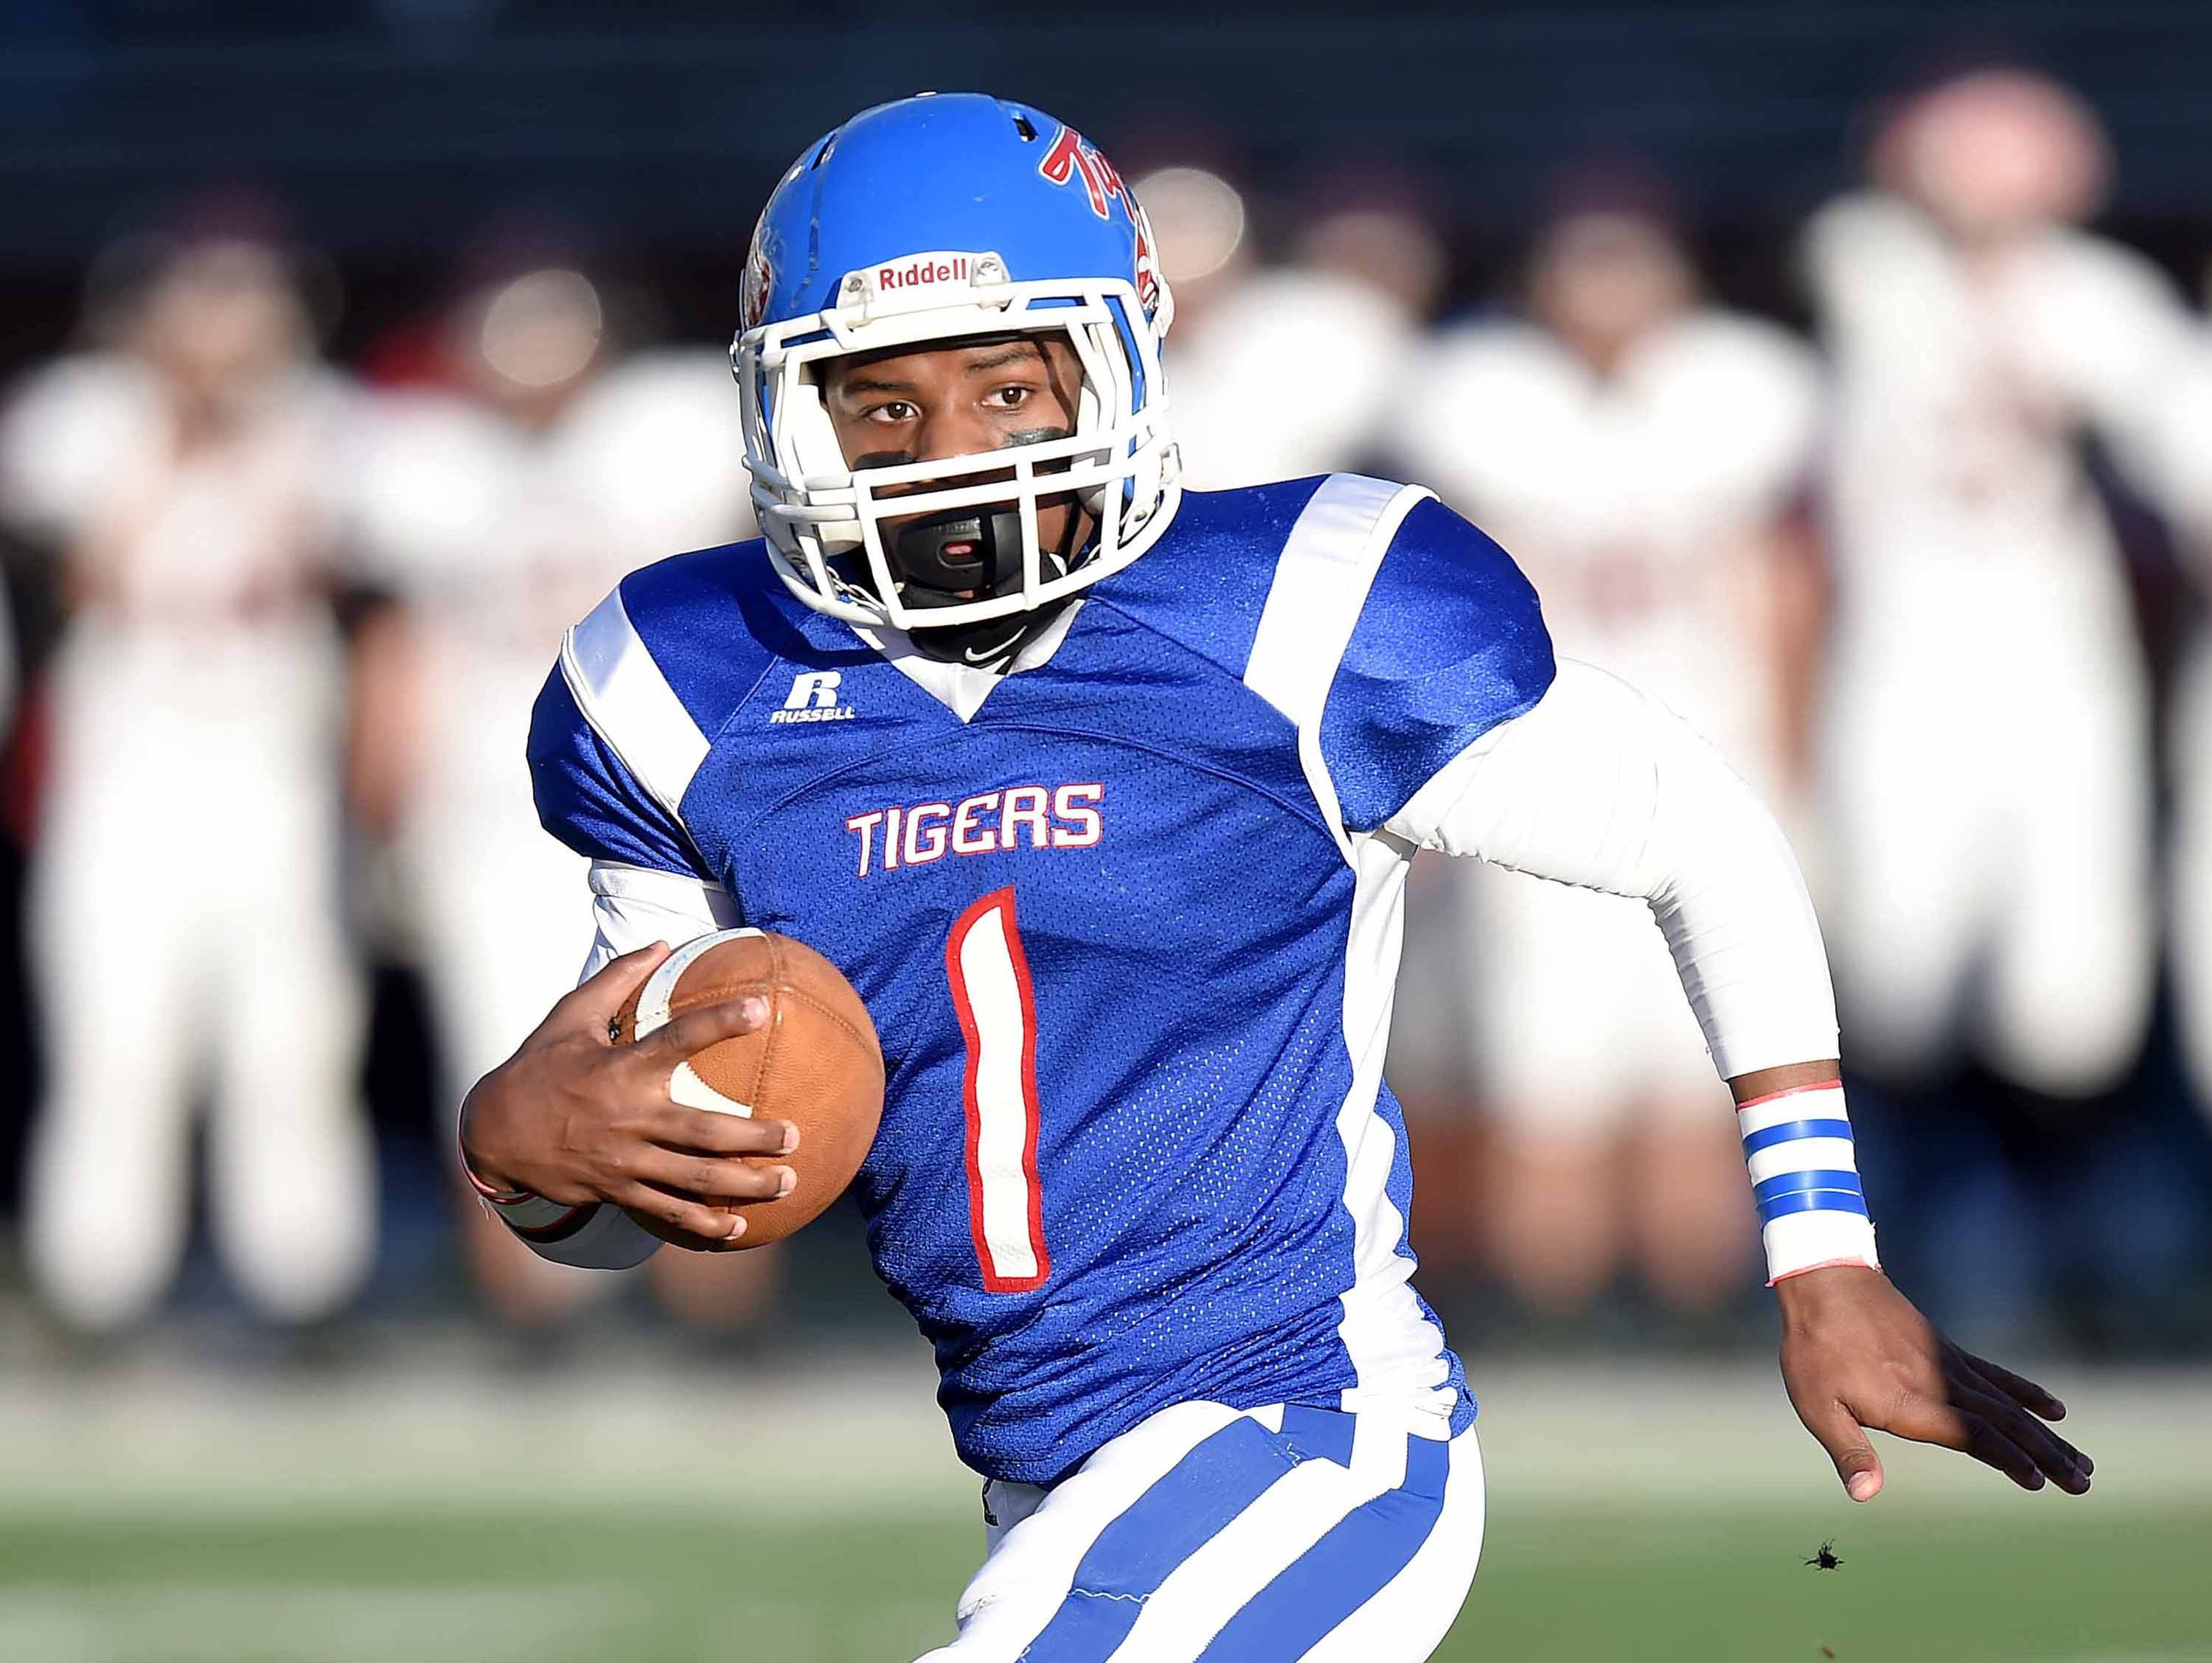 Noxubee County's Ti'Morrius Conner comes from a long line of quarterbacks who have made a big impact on the Tigers football program.